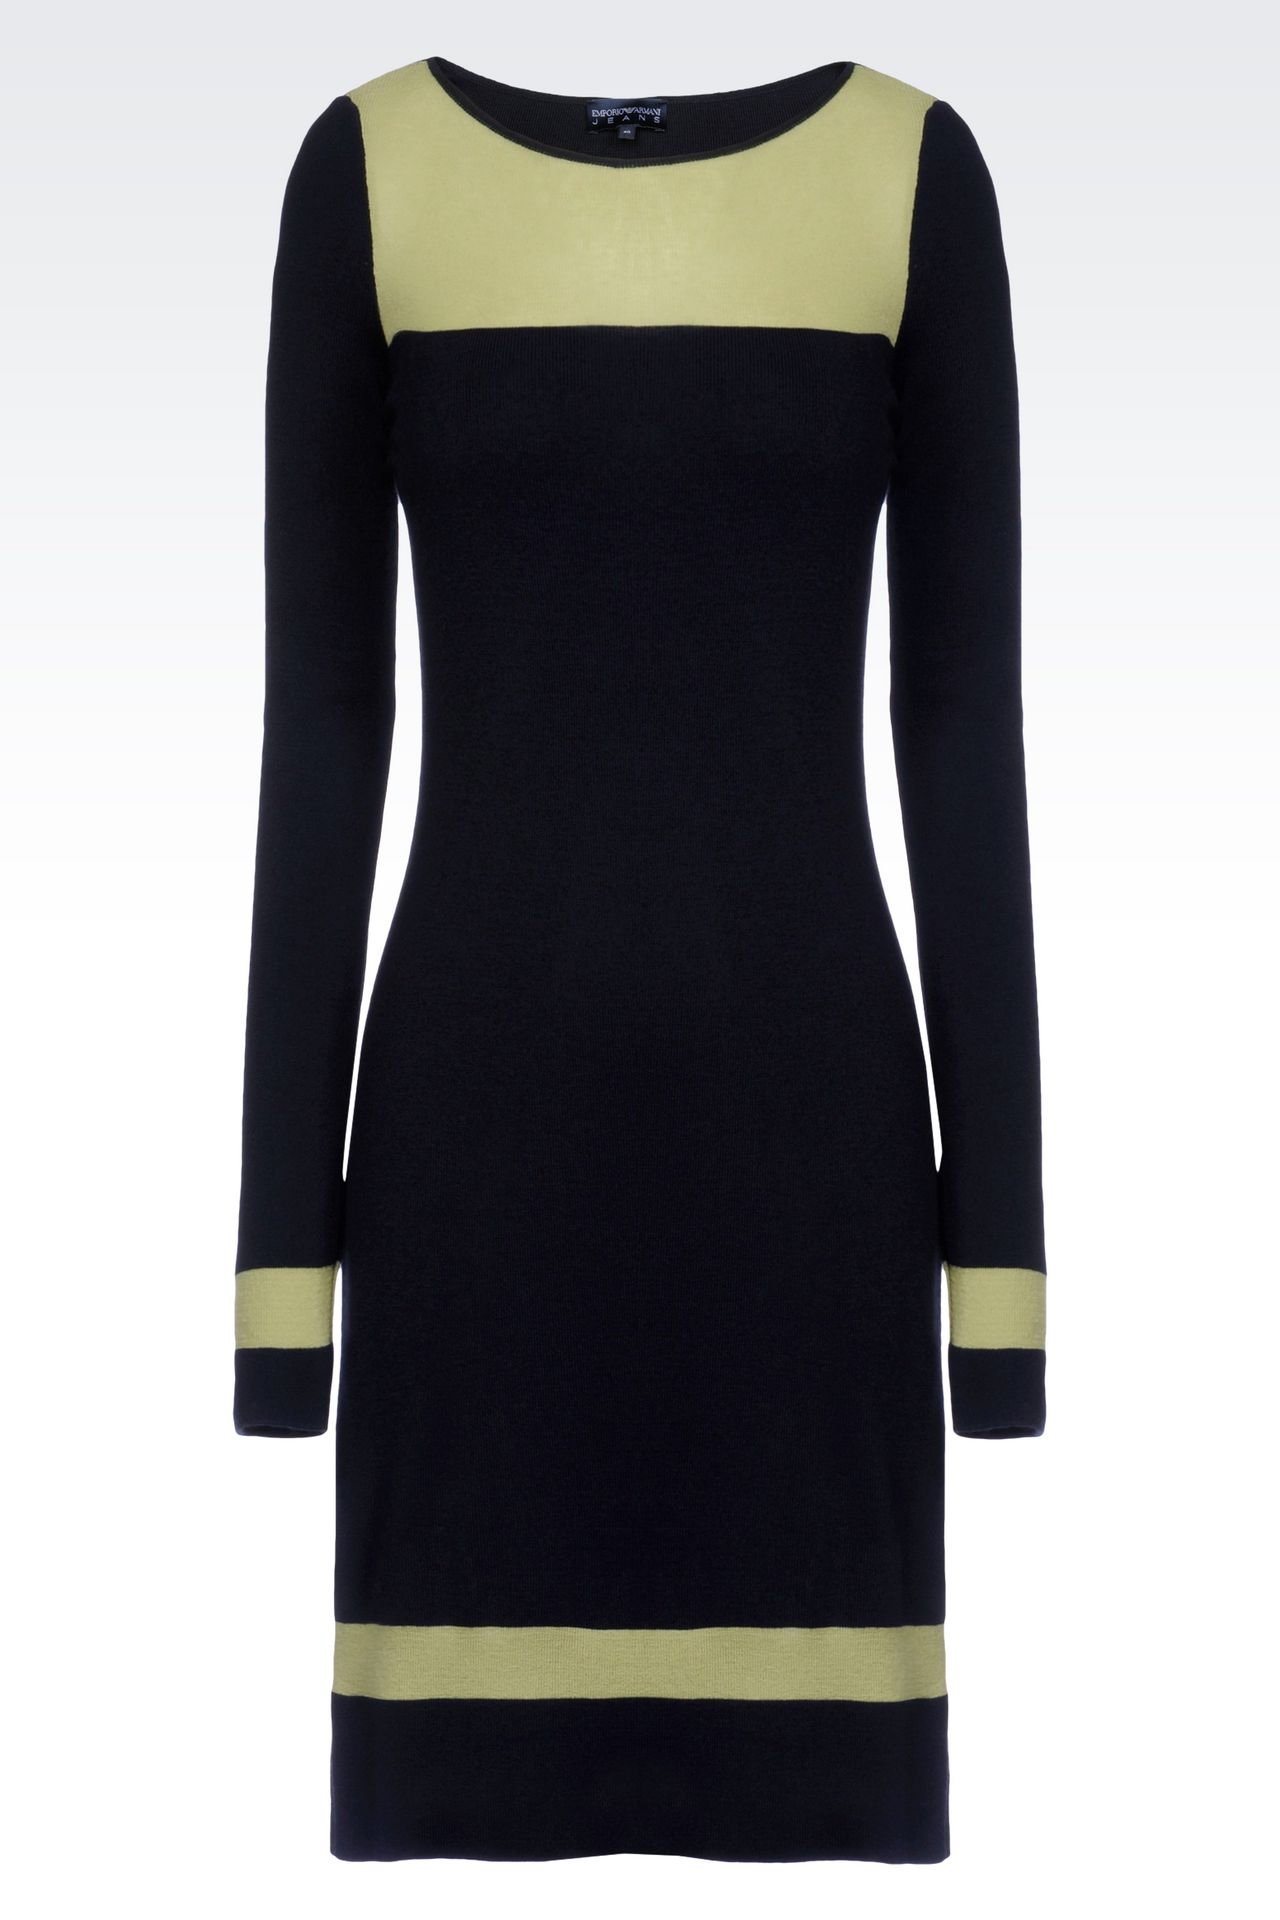 DRESS IN TWO-COLOUR WOOL AND VISCOSE: Short Dresses Women by Armani - 0